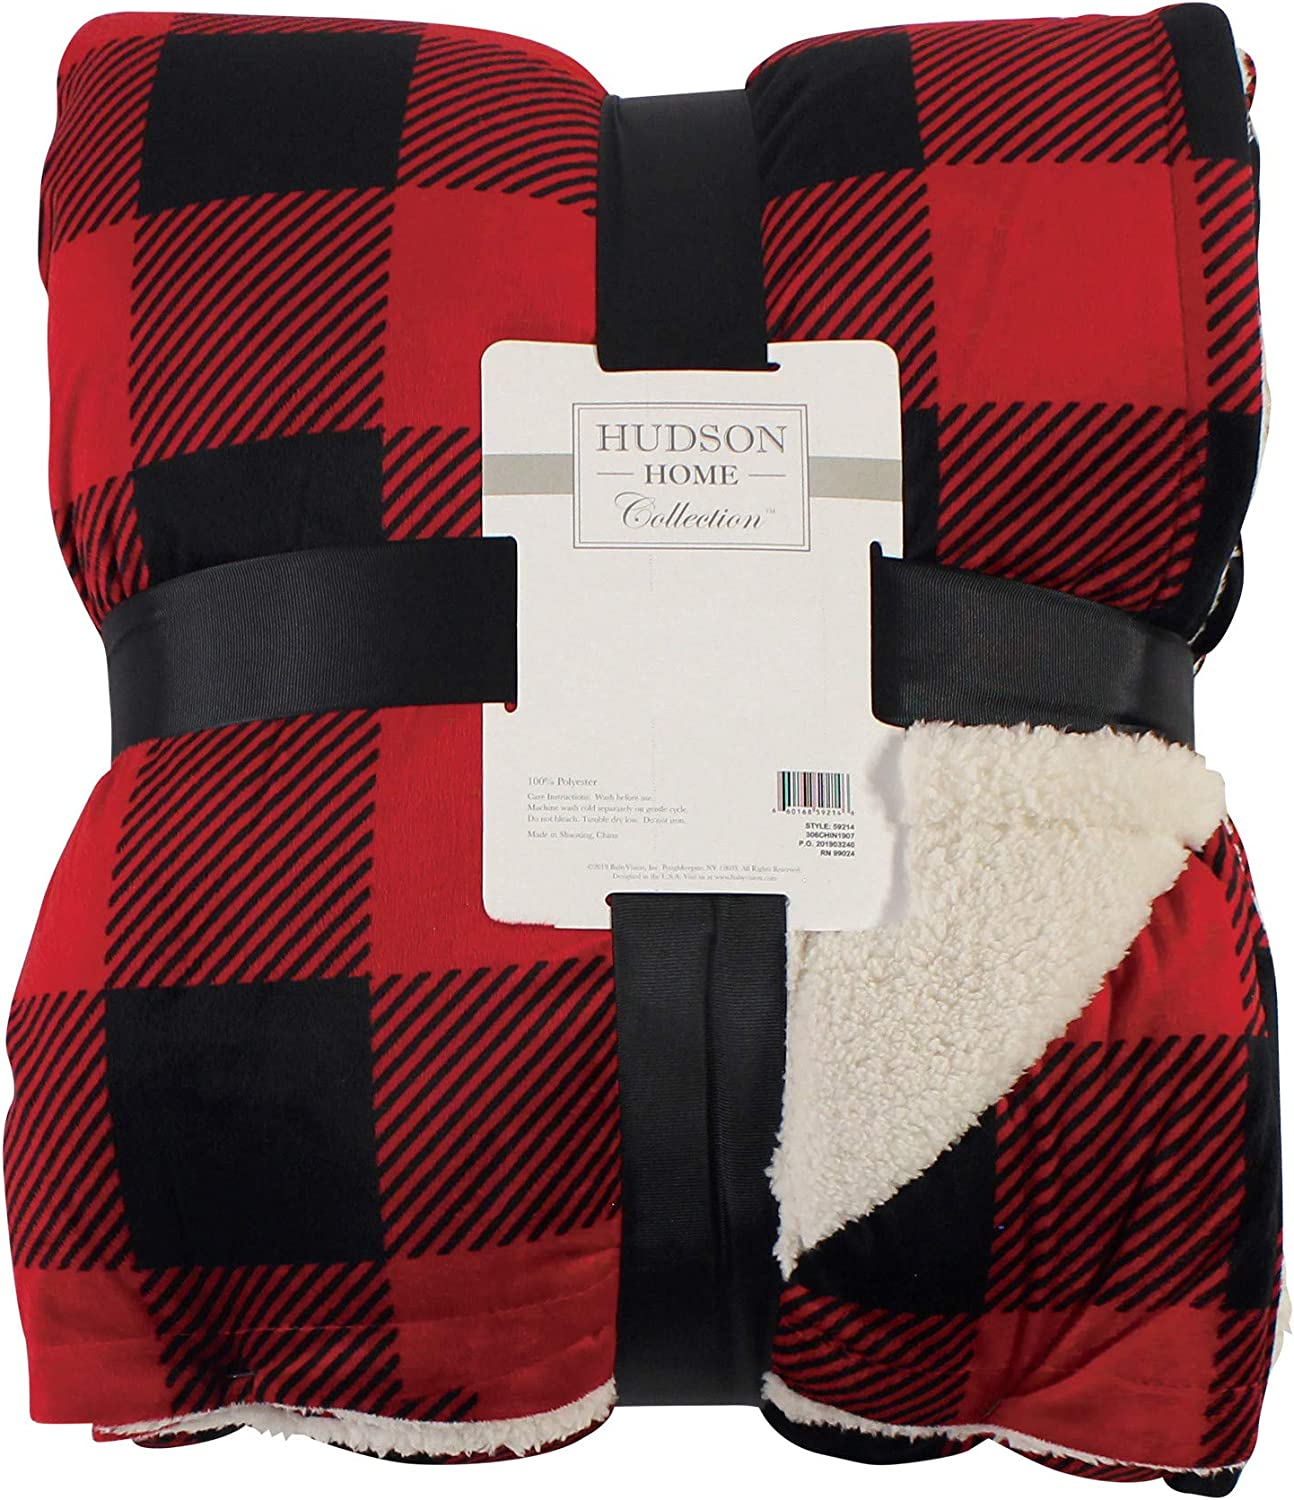 HUDSON HOME COLLECTION Mink Blanket with Sherpa, Buffalo Plaid, Throw